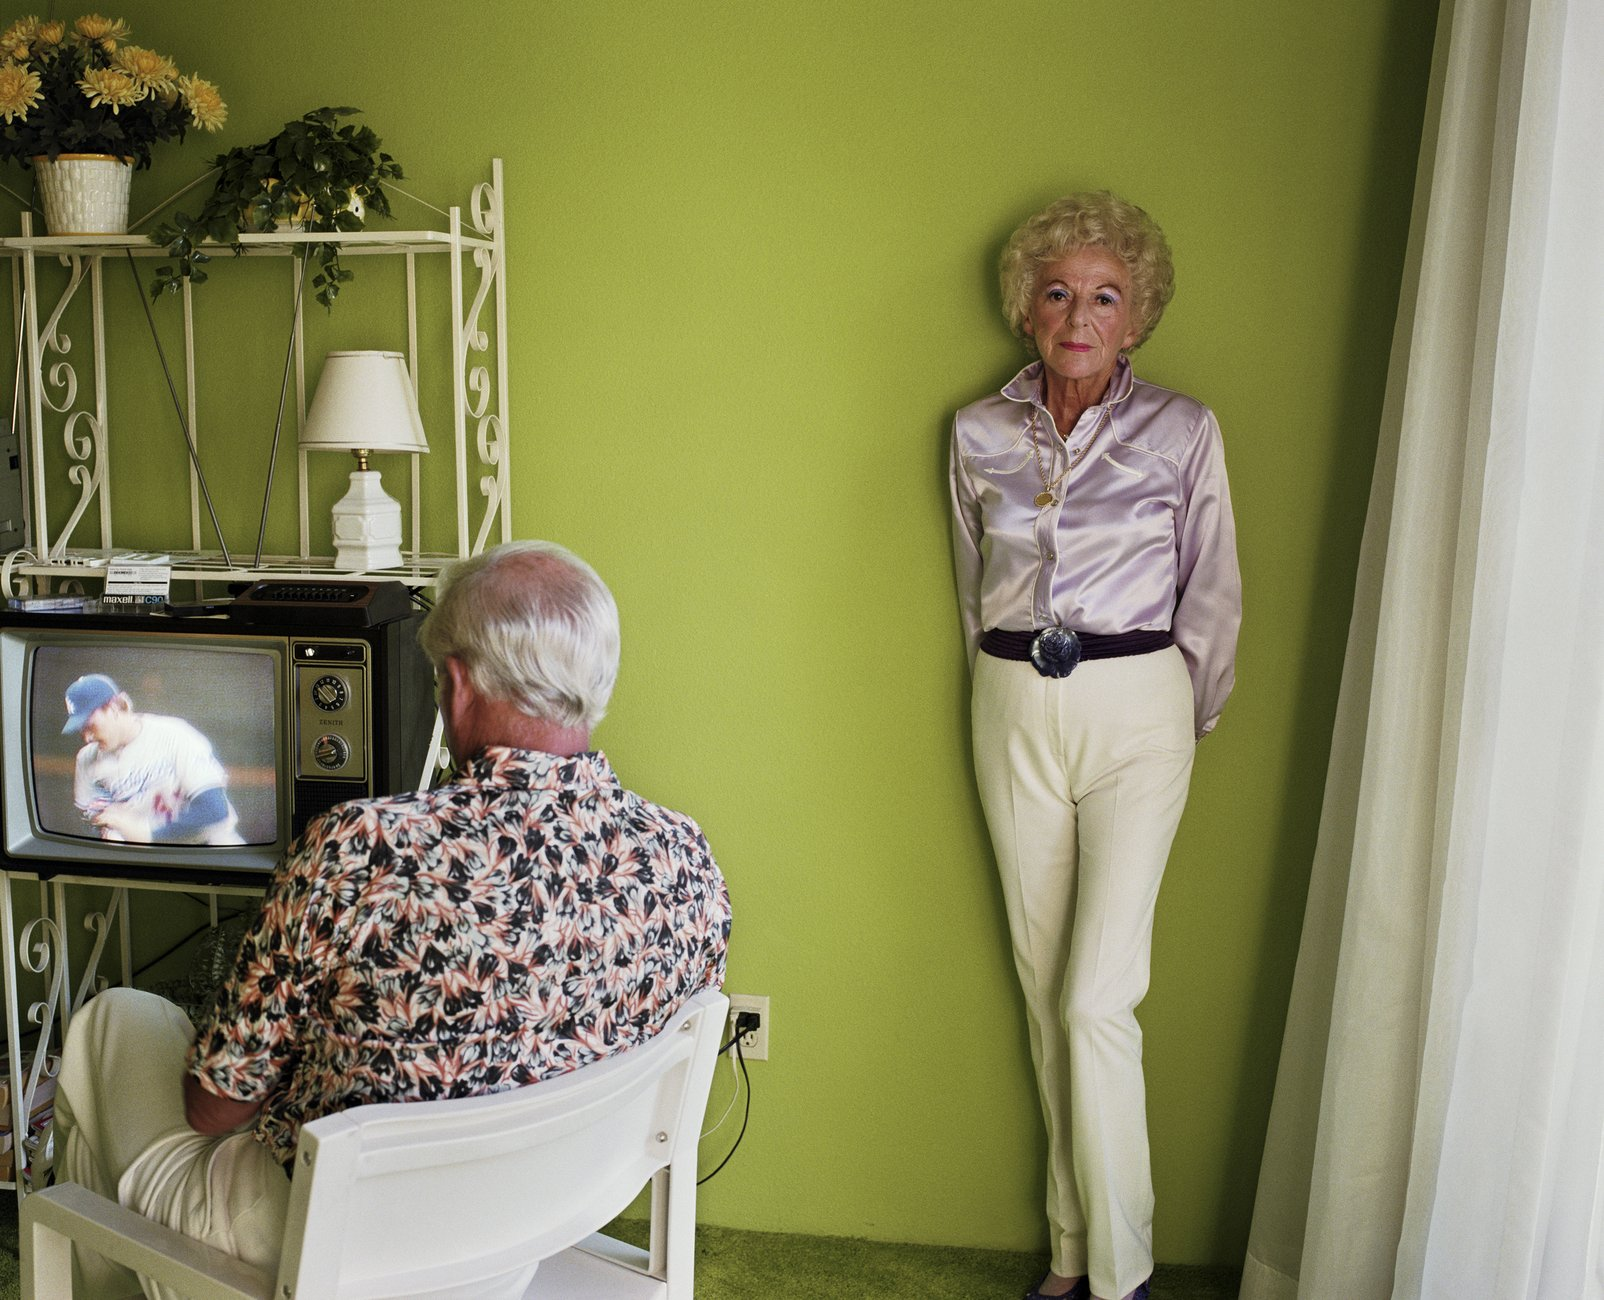 Artwork image, Larry Sultan, My Mother Posing for Me